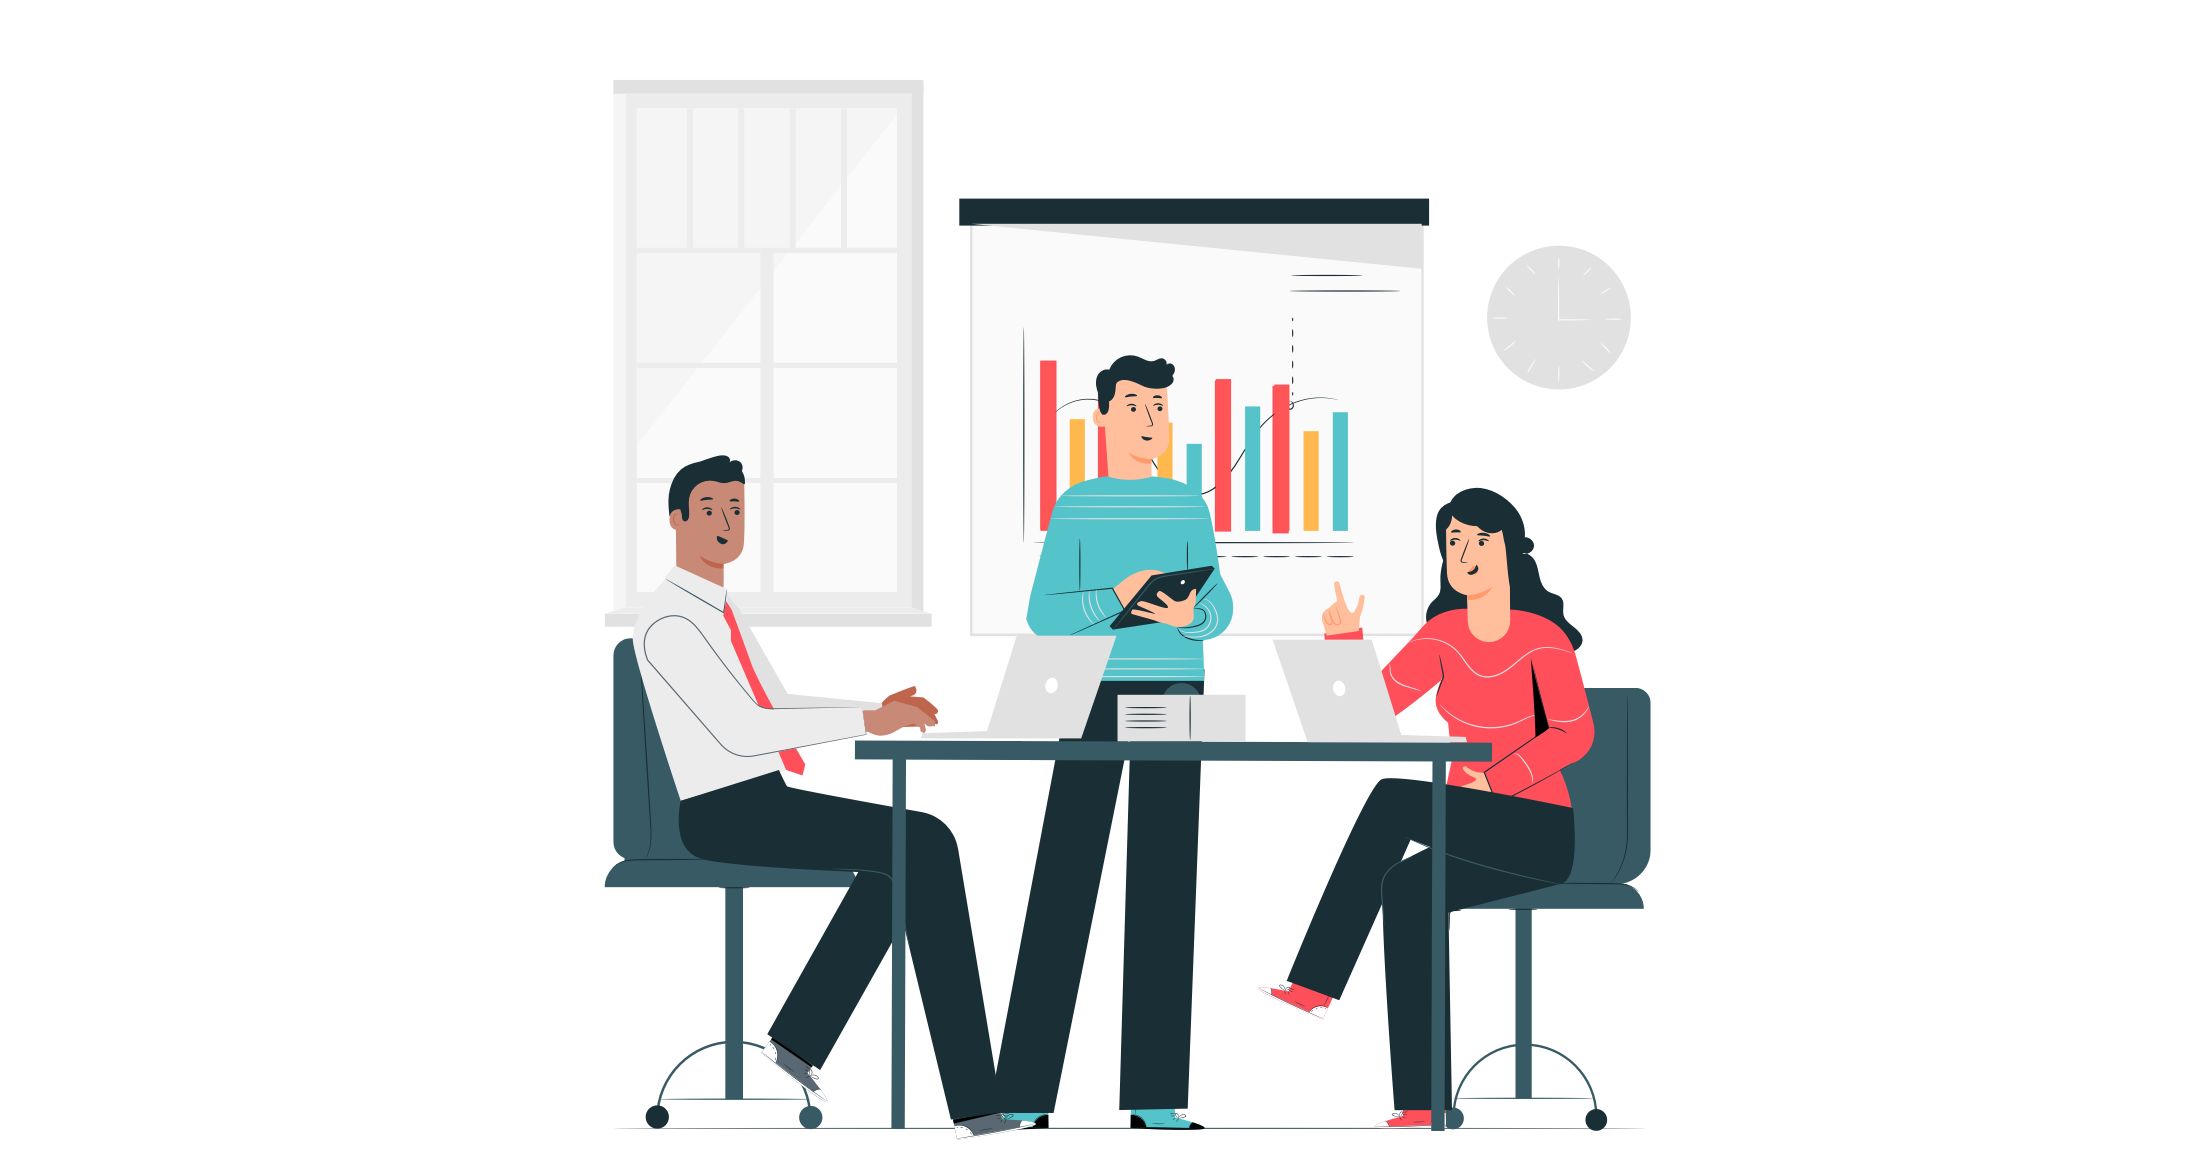 3 Tips to Make Your Next Employee Meeting Meaningful and Memorable